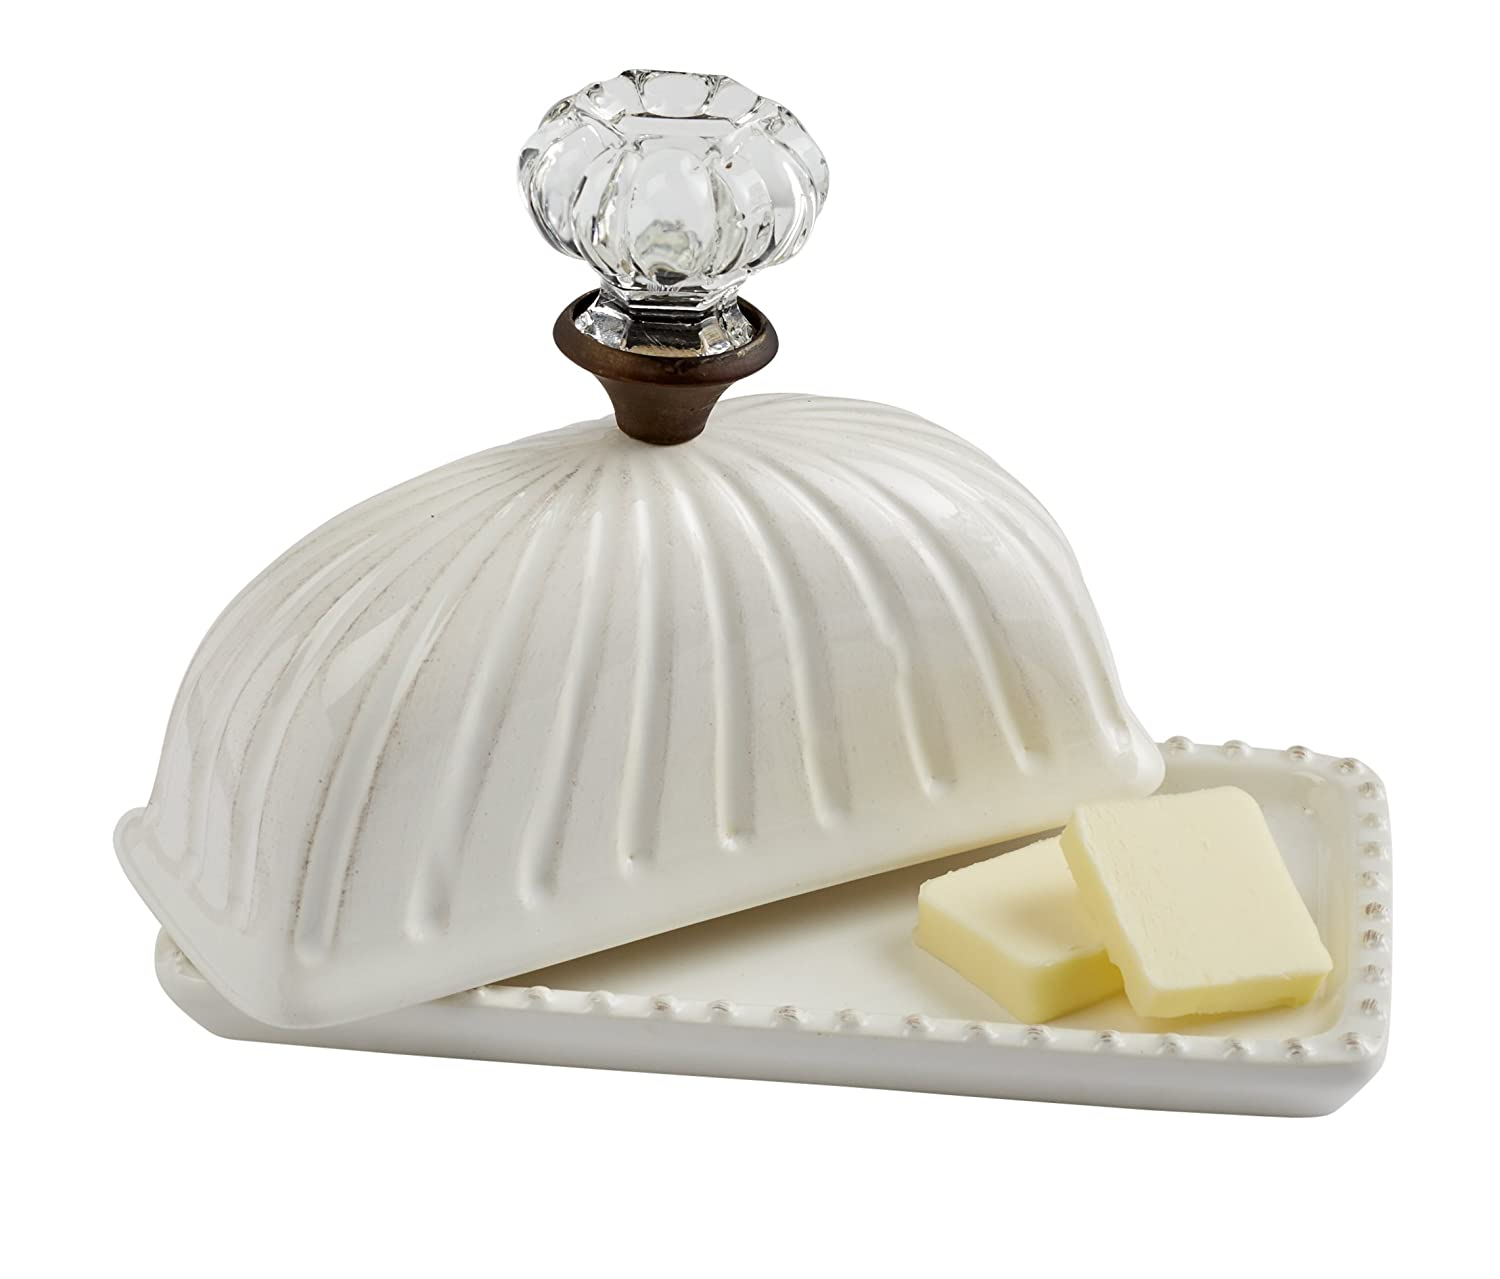 Christmas Tablescape Décor - Vintage inspired fluted white ceramic butter dish with a clear glass door knob cover